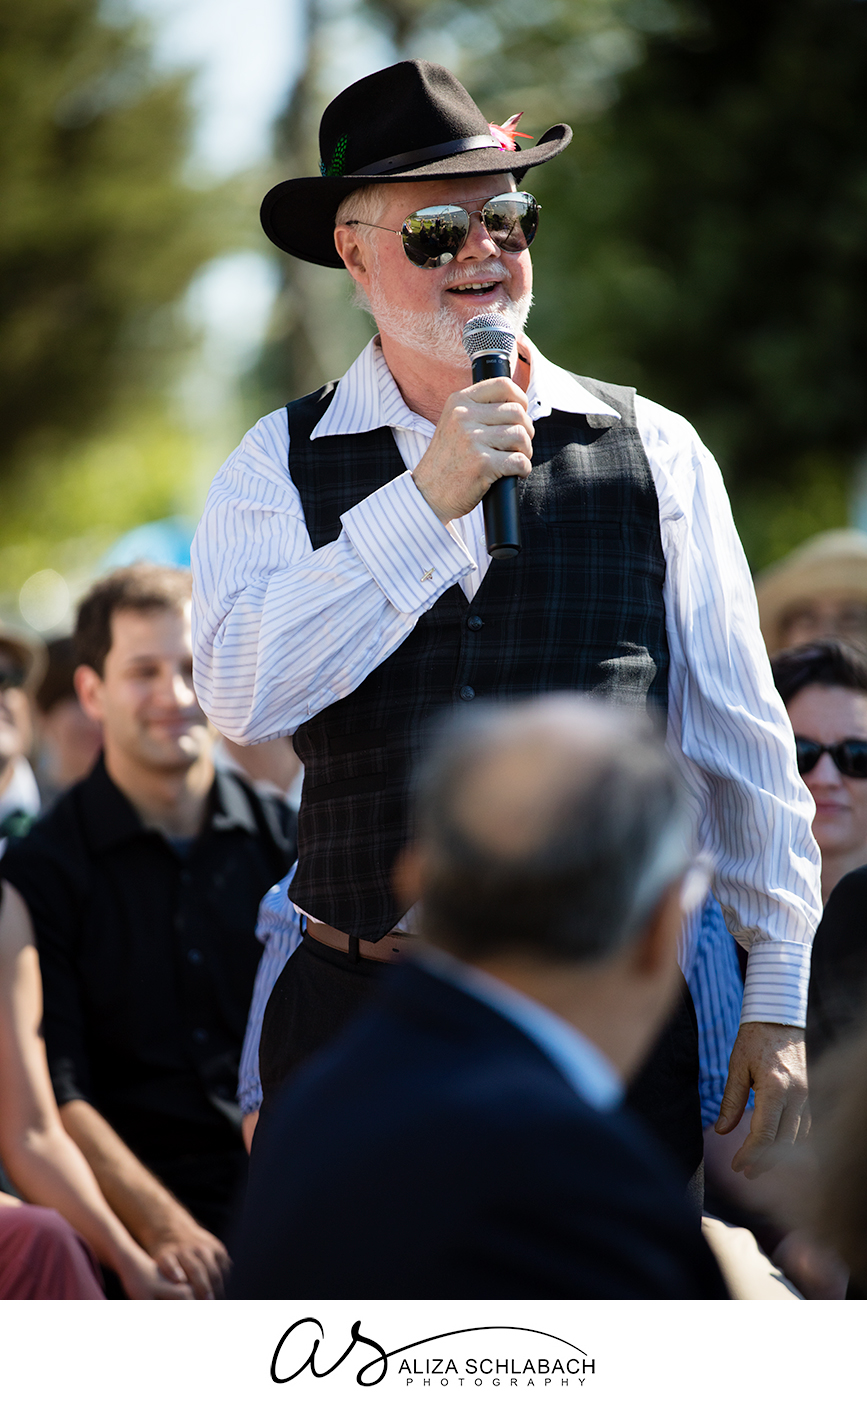 Photo of a man in a had with sunglasses speaking into a microphone at a wedding ceremony